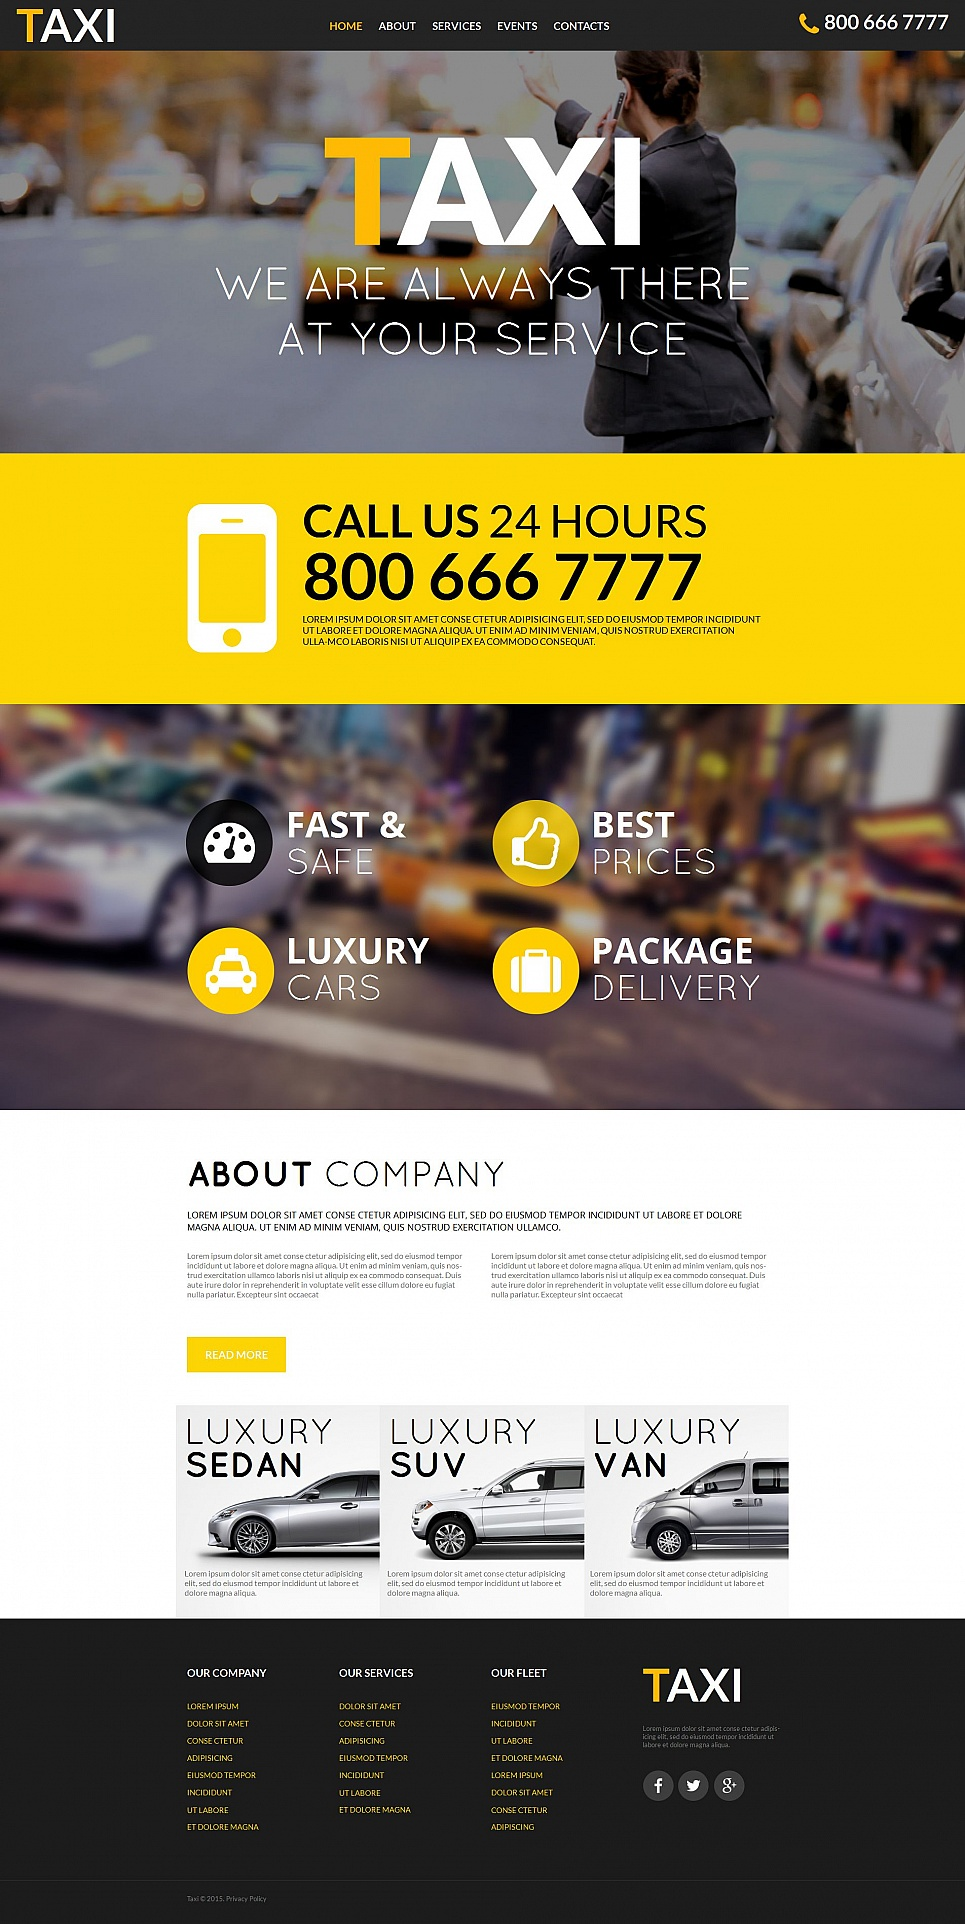 Website Design for Cab Company - image